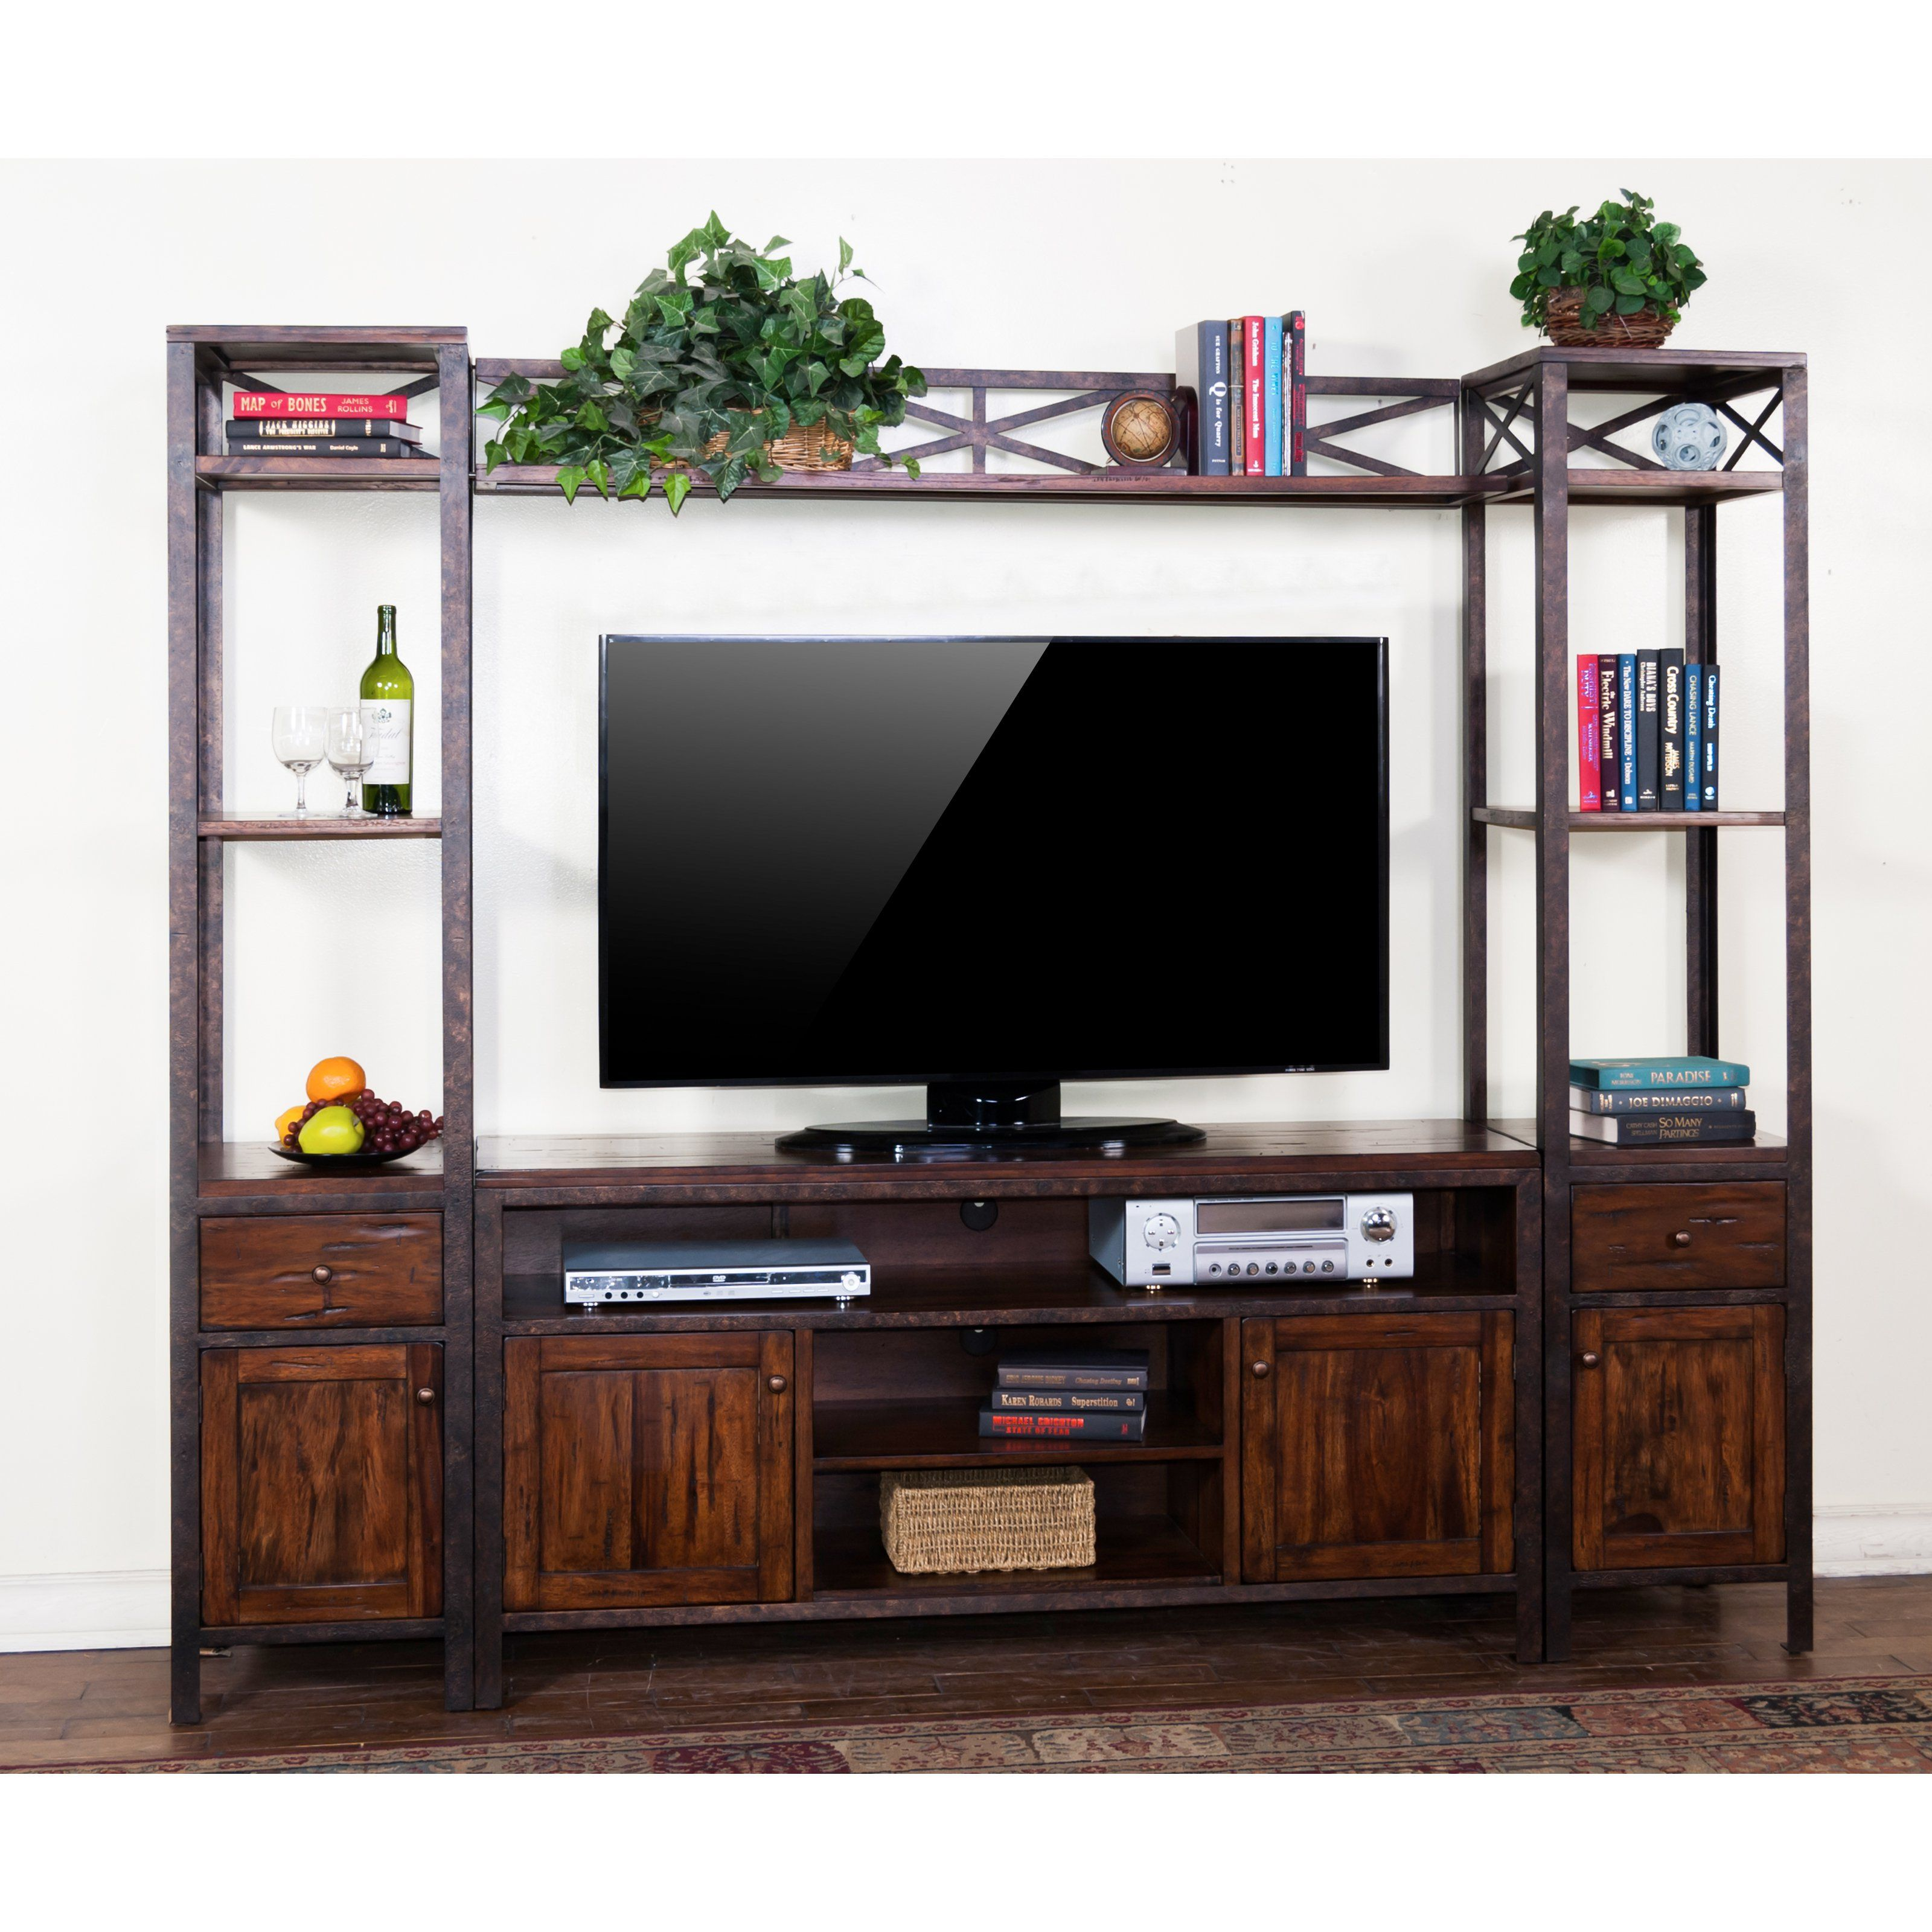 Entertainment Center Accent Wall With Vinyl: Sunny Designs Crosswinds 60 In. Entertainment Center